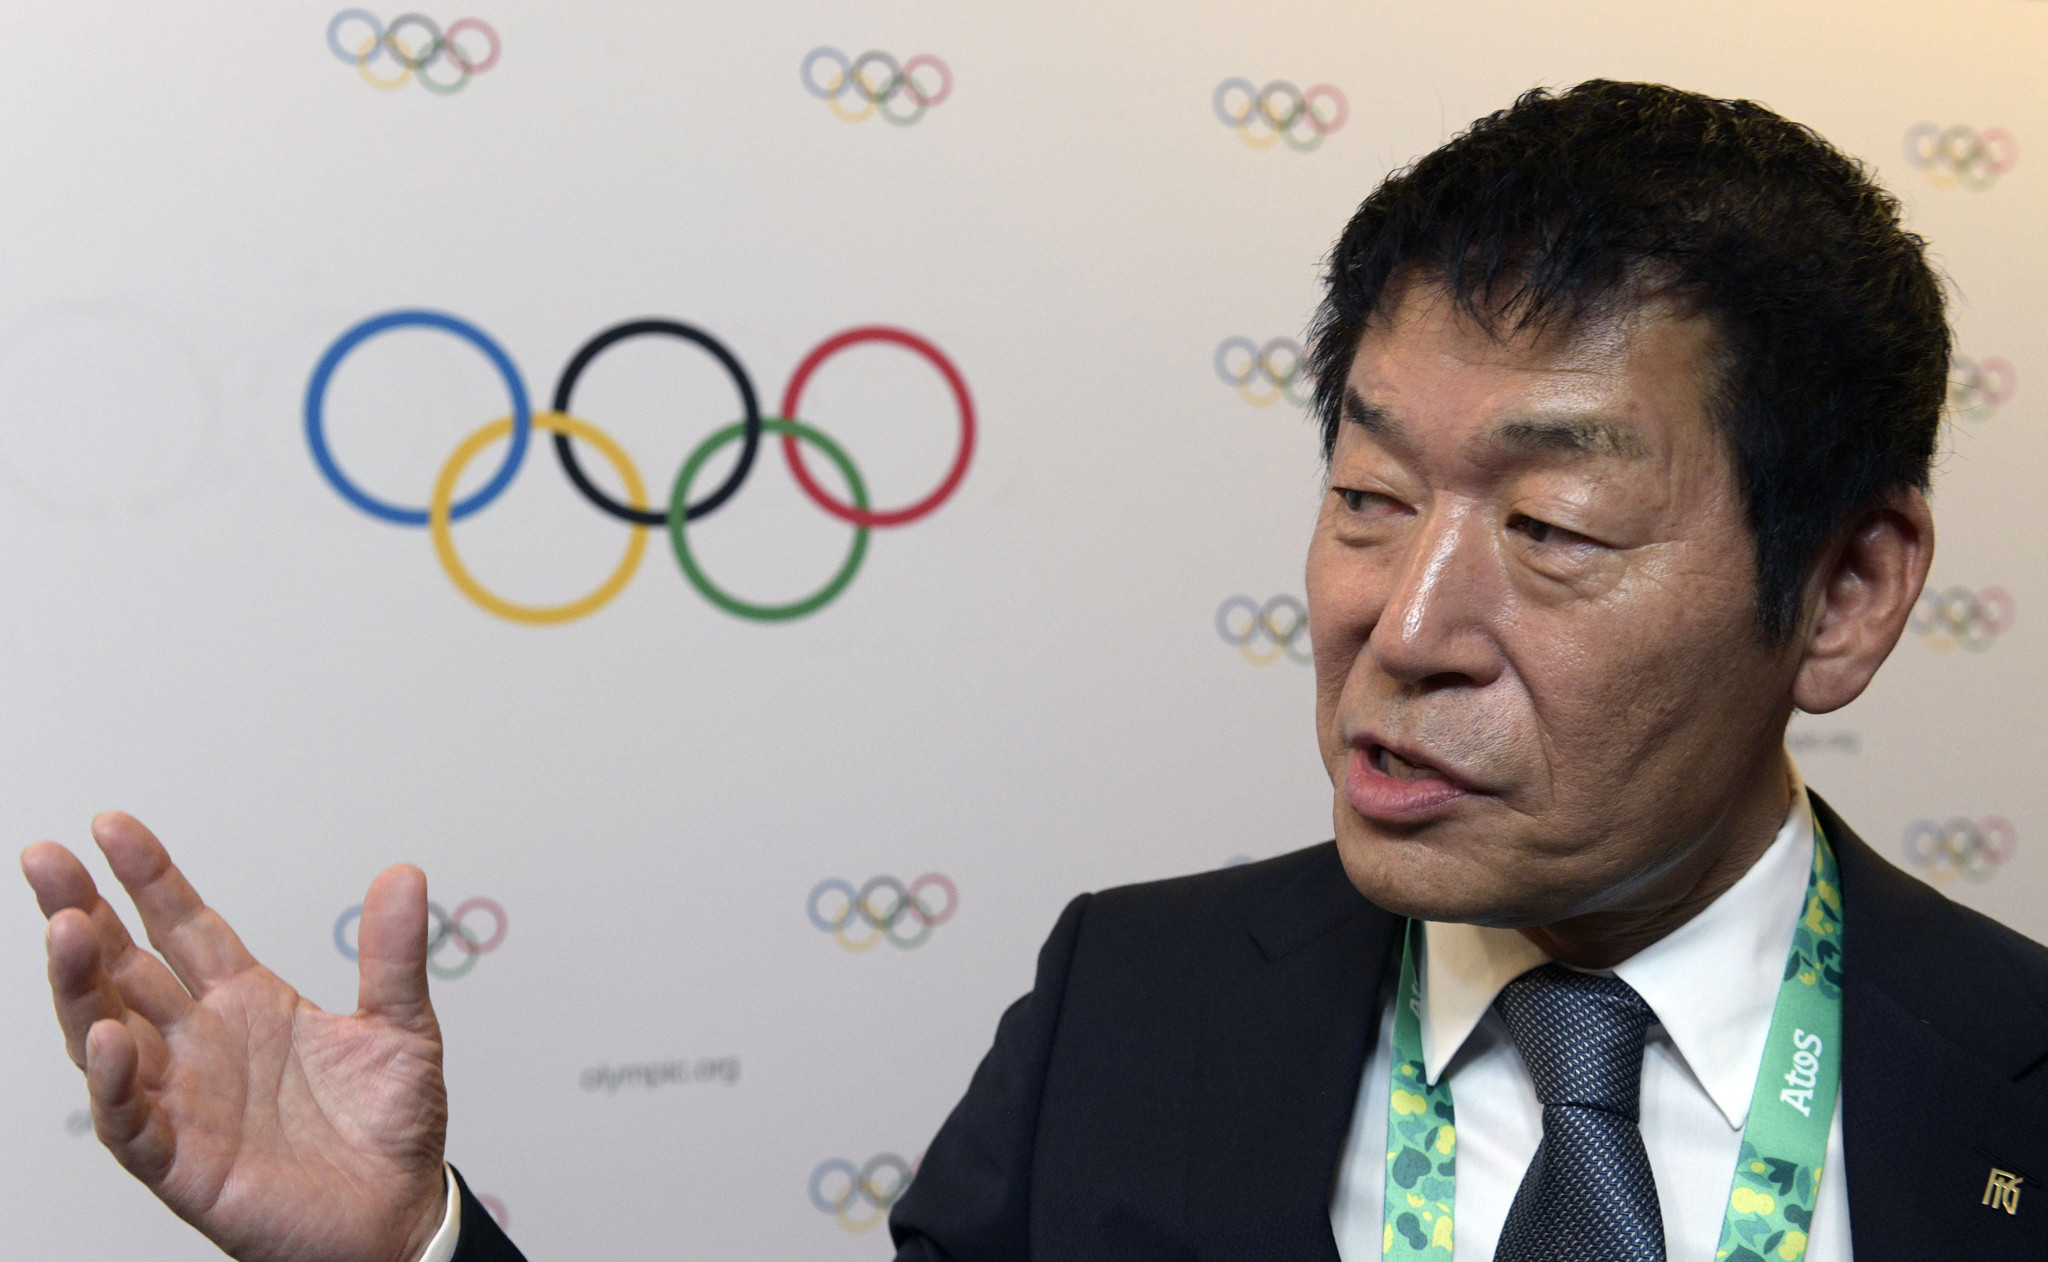 The plans of FIG President Morinari Watanabe to sanction the inclusion of parkour as a gymnastics event are coming under heavy fire ©Getty Images